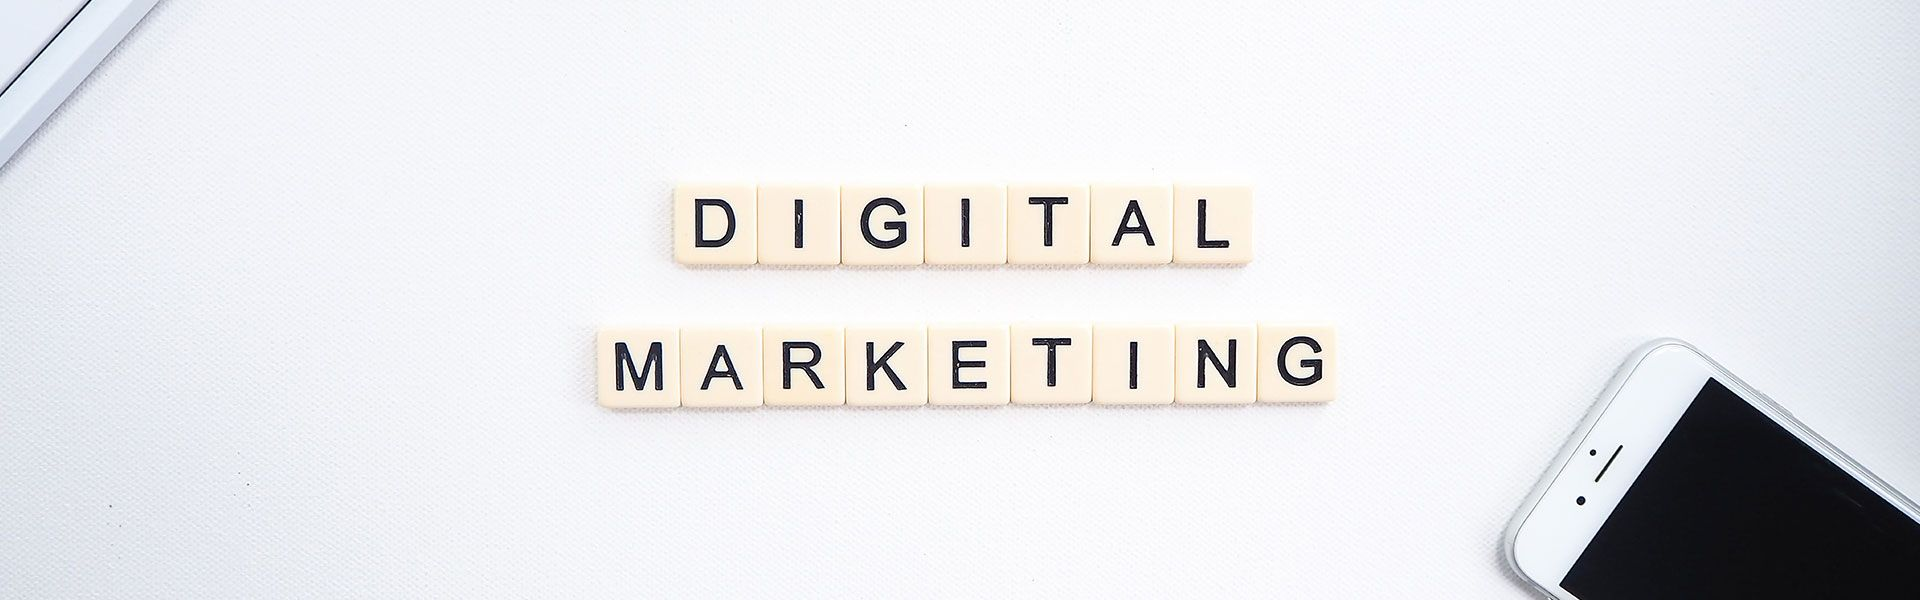 Digital Marketing Essex